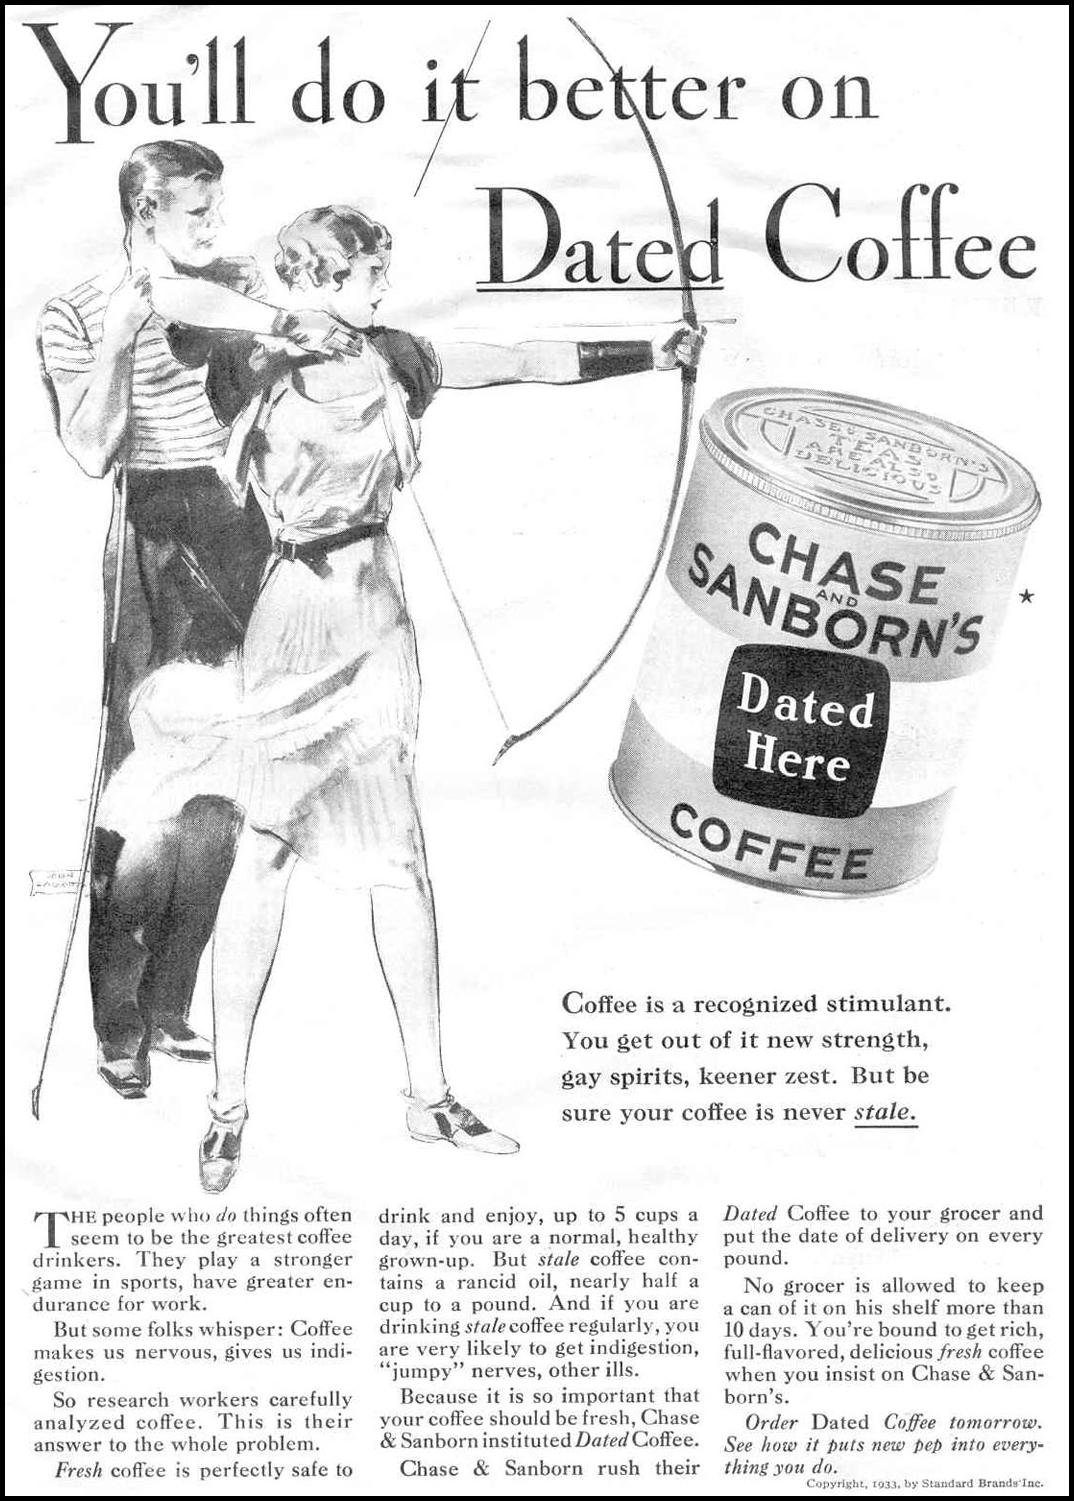 CHASE & SANBORN COFFEE GOOD HOUSEKEEPING 06/01/1933 p. 103